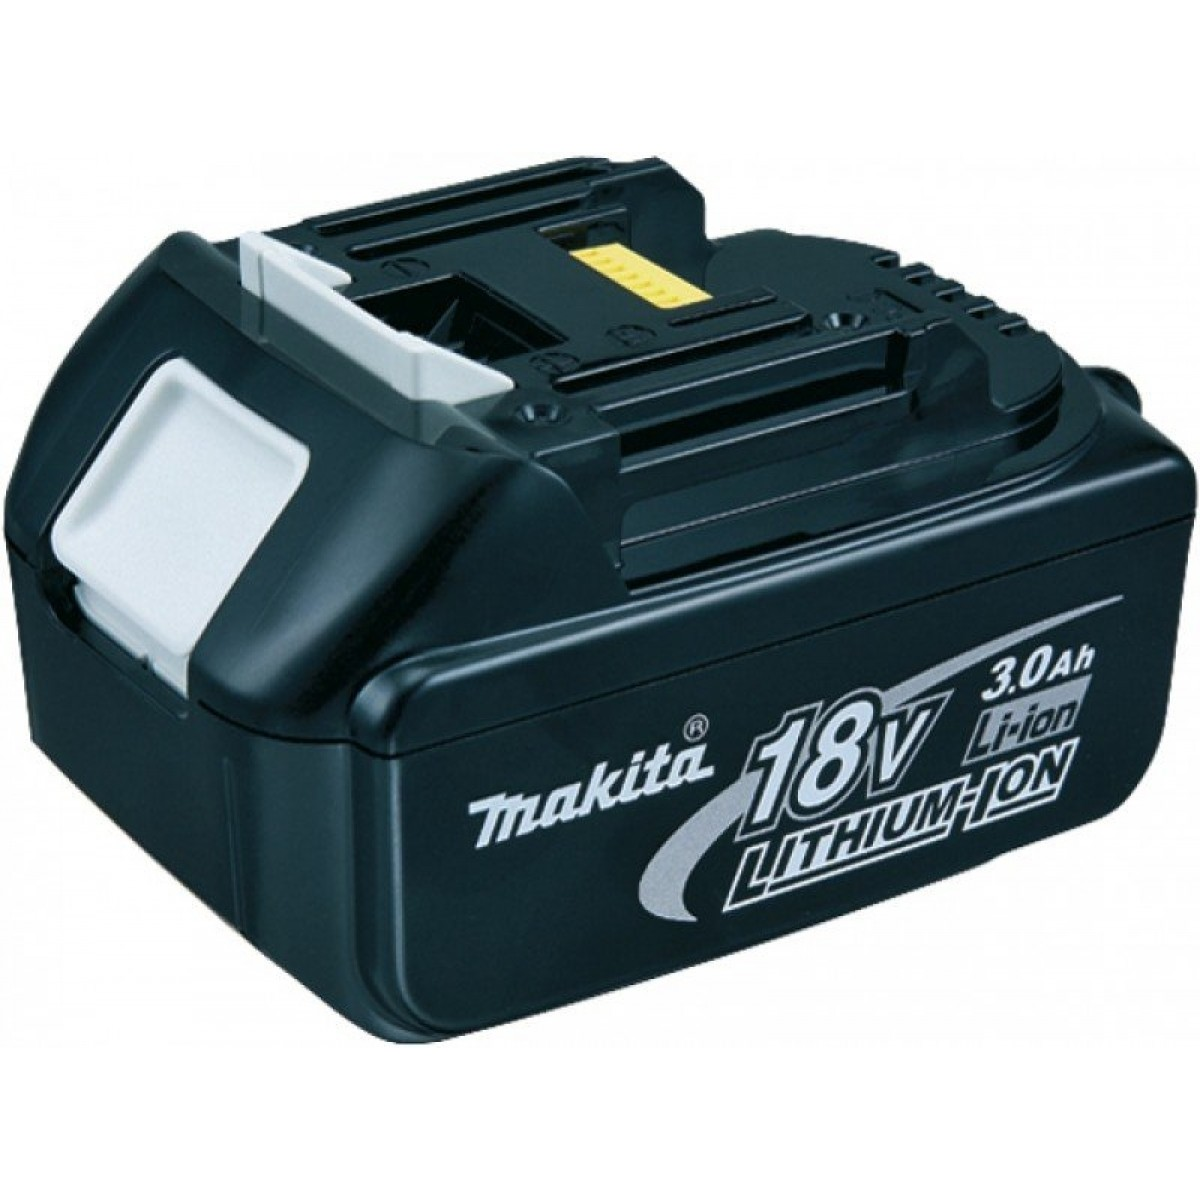 Makita Li-ion 18V batteri 3,0Ah-31